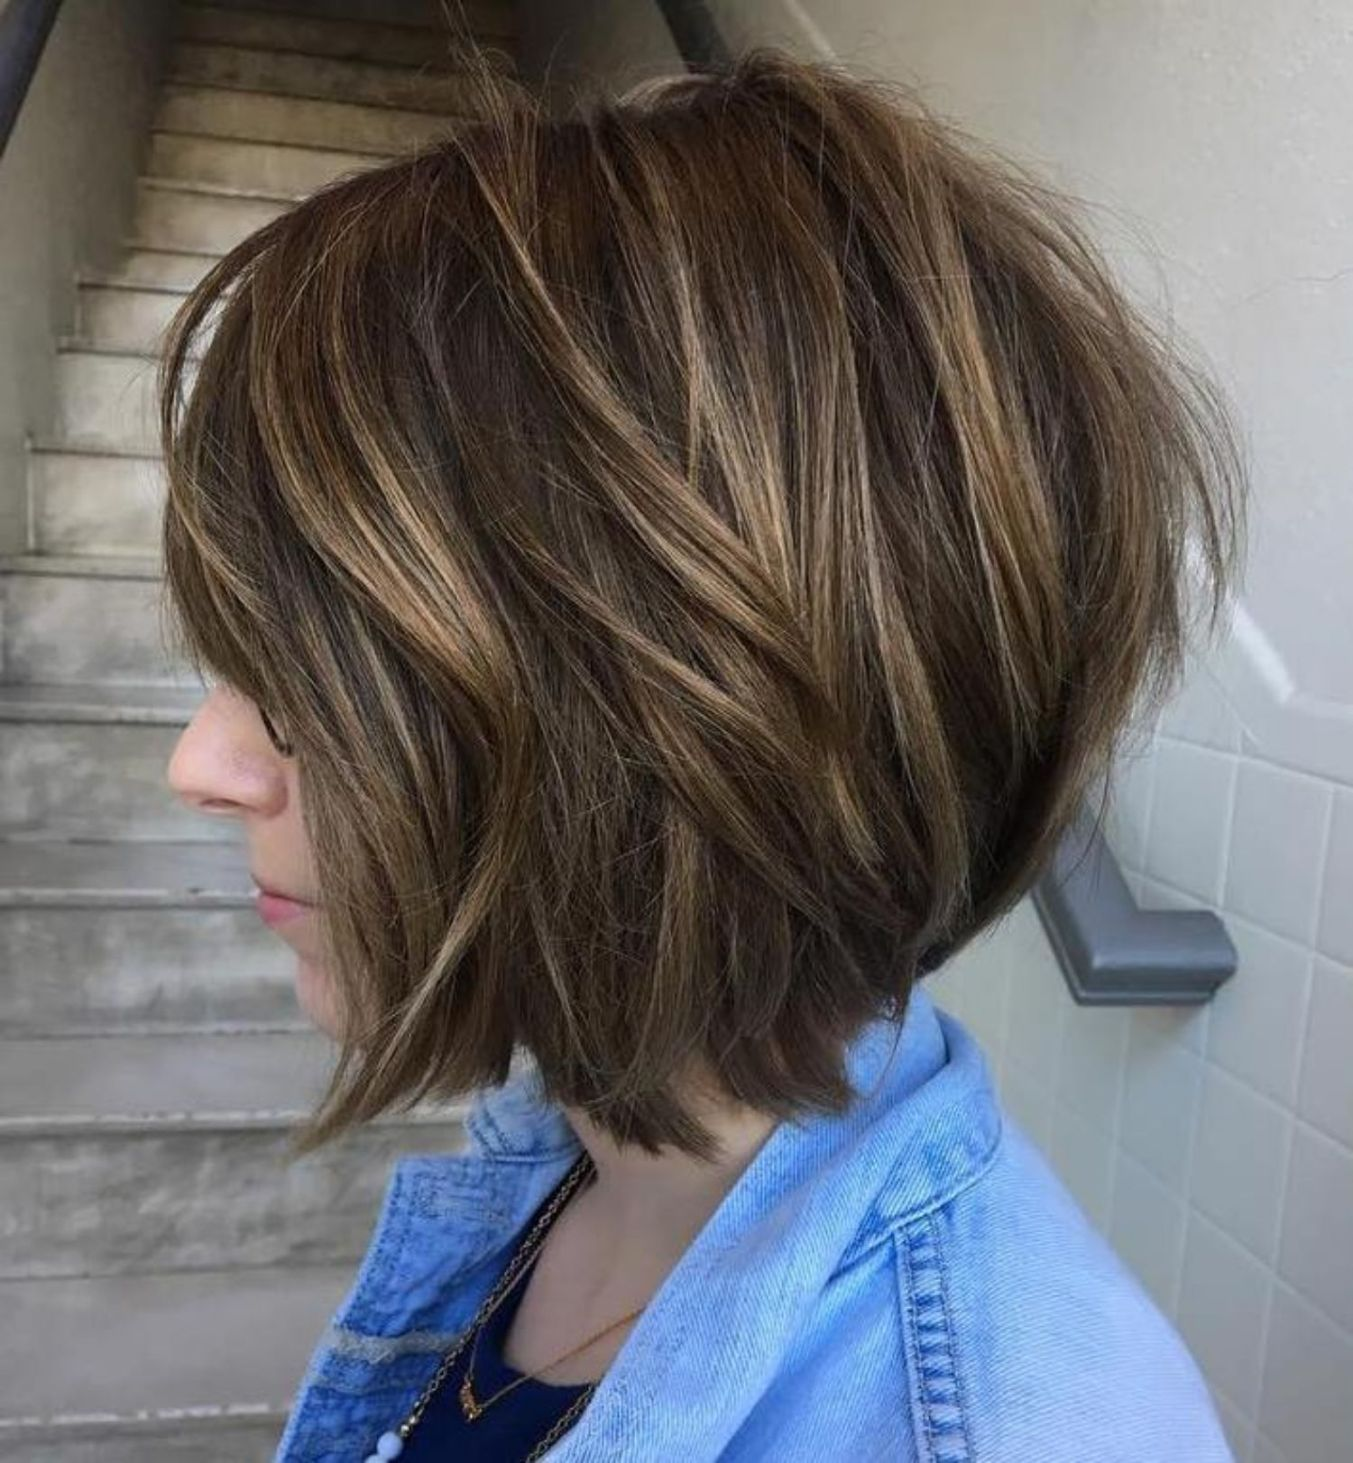 Classy Brown Bob With Long Layers Short Hair With Layers Layered Hair Thick Hair Styles